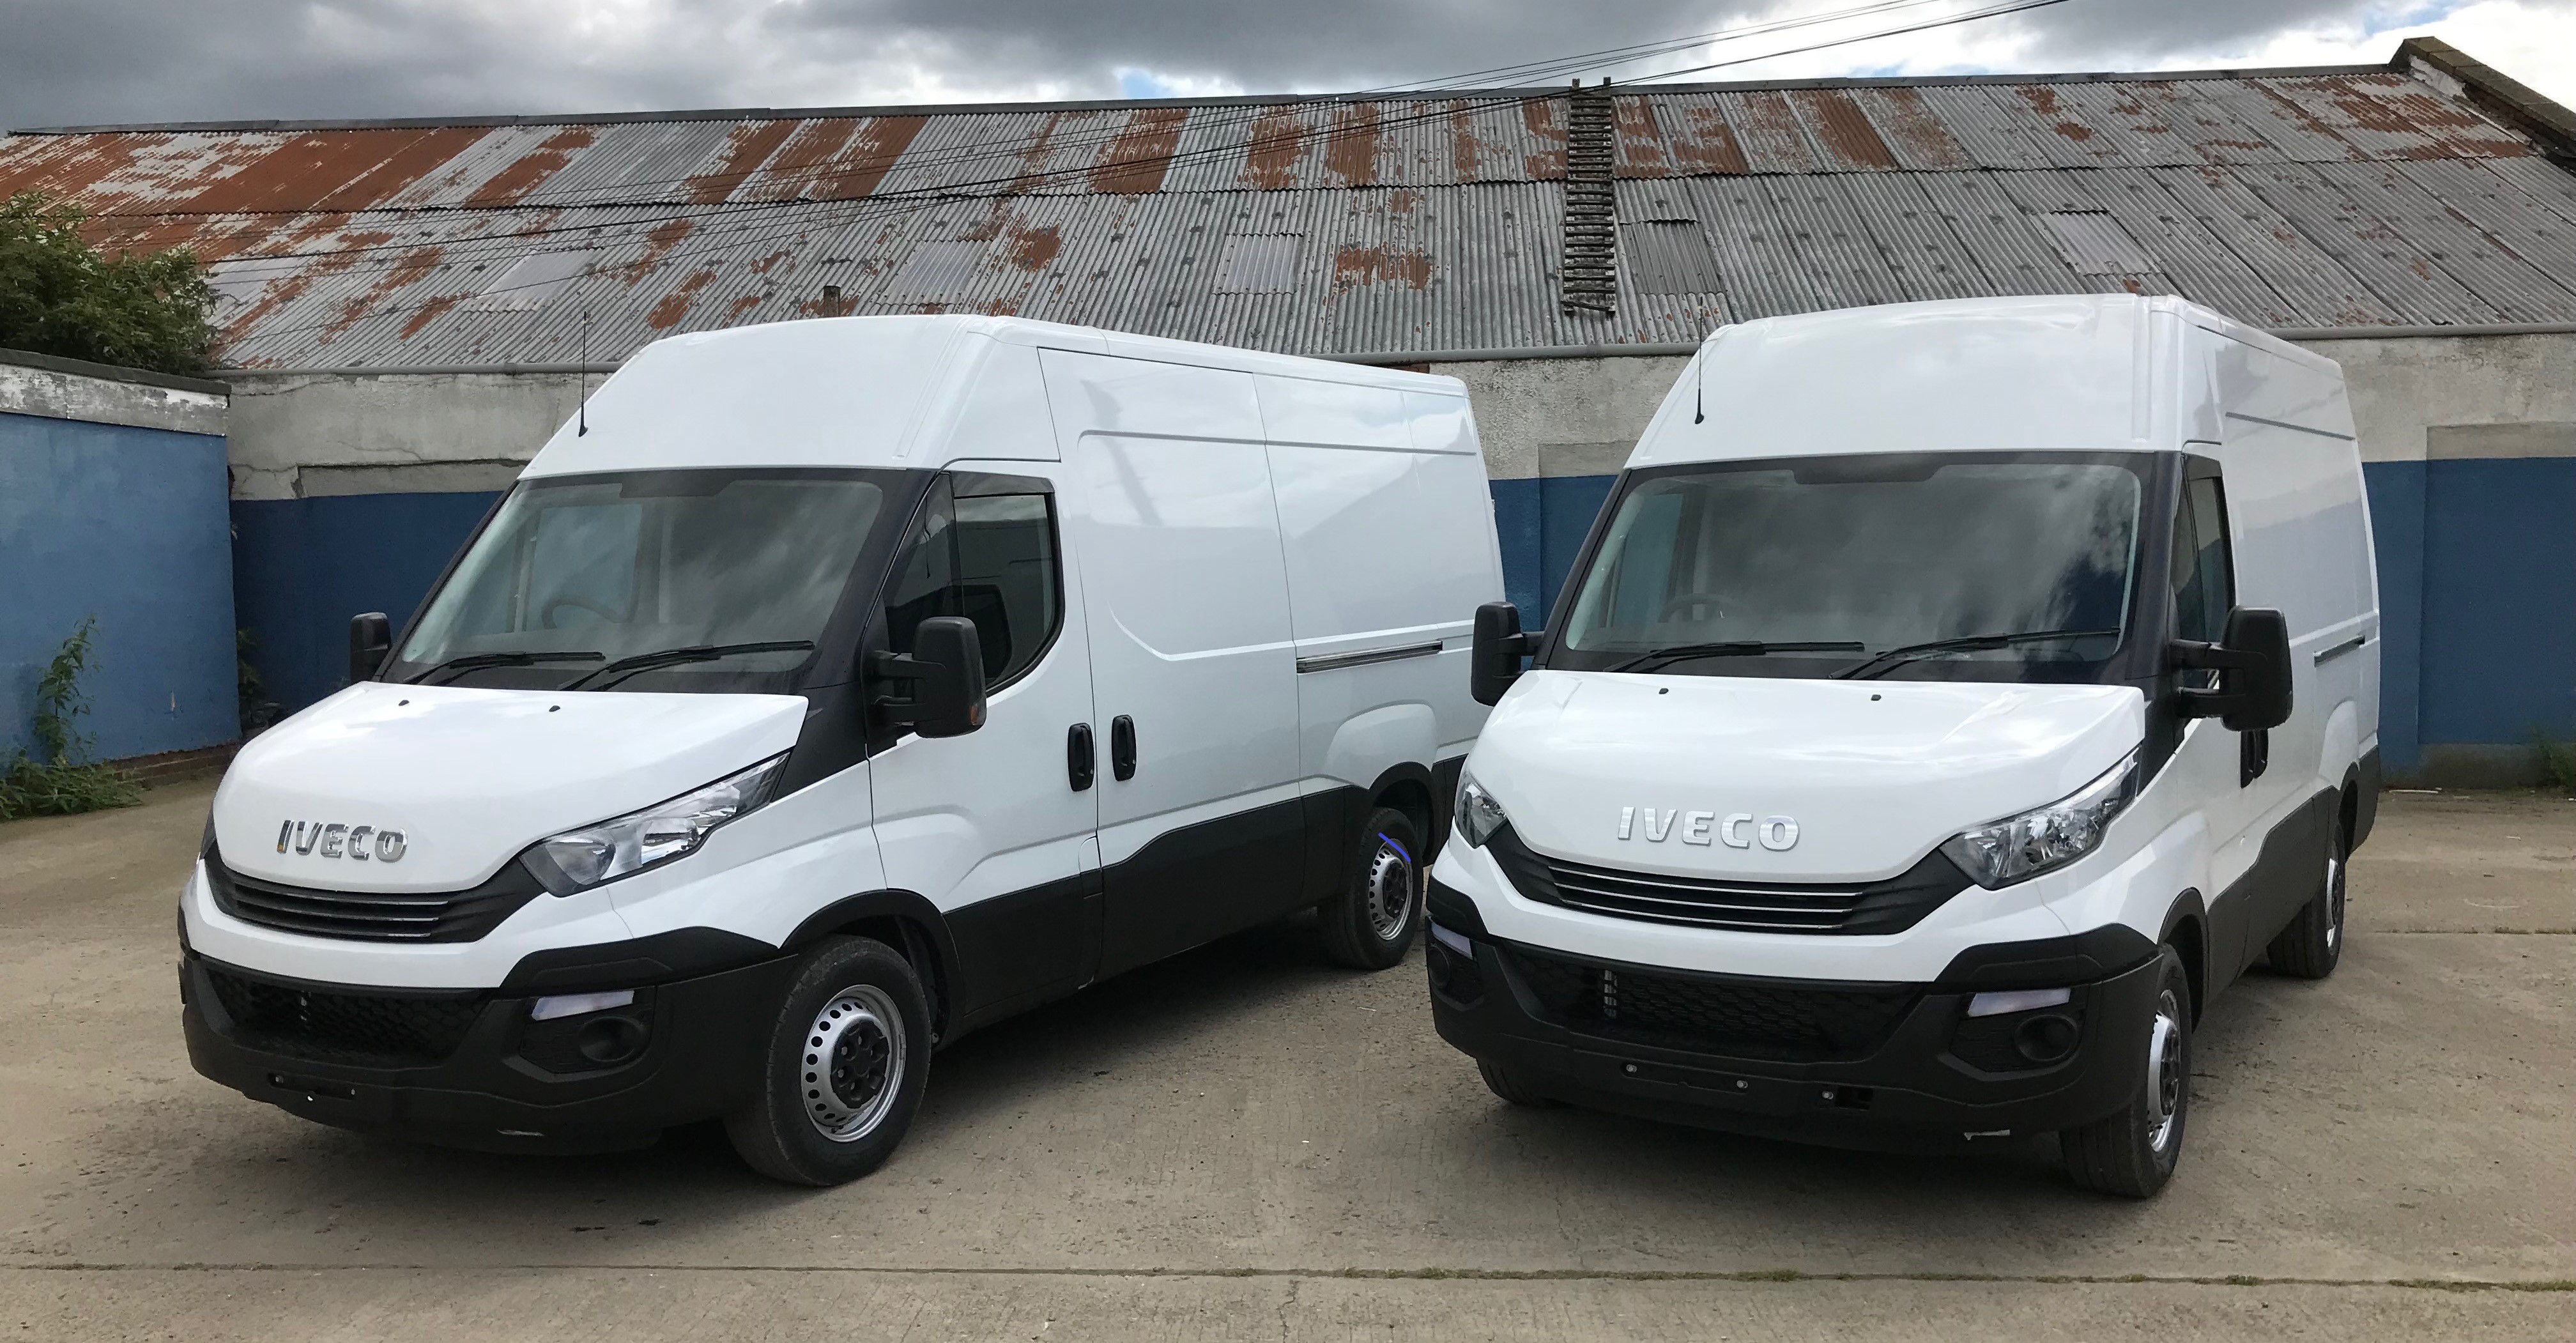 North East Truck and Van enters into a partnership with O&H Vehicle Technology